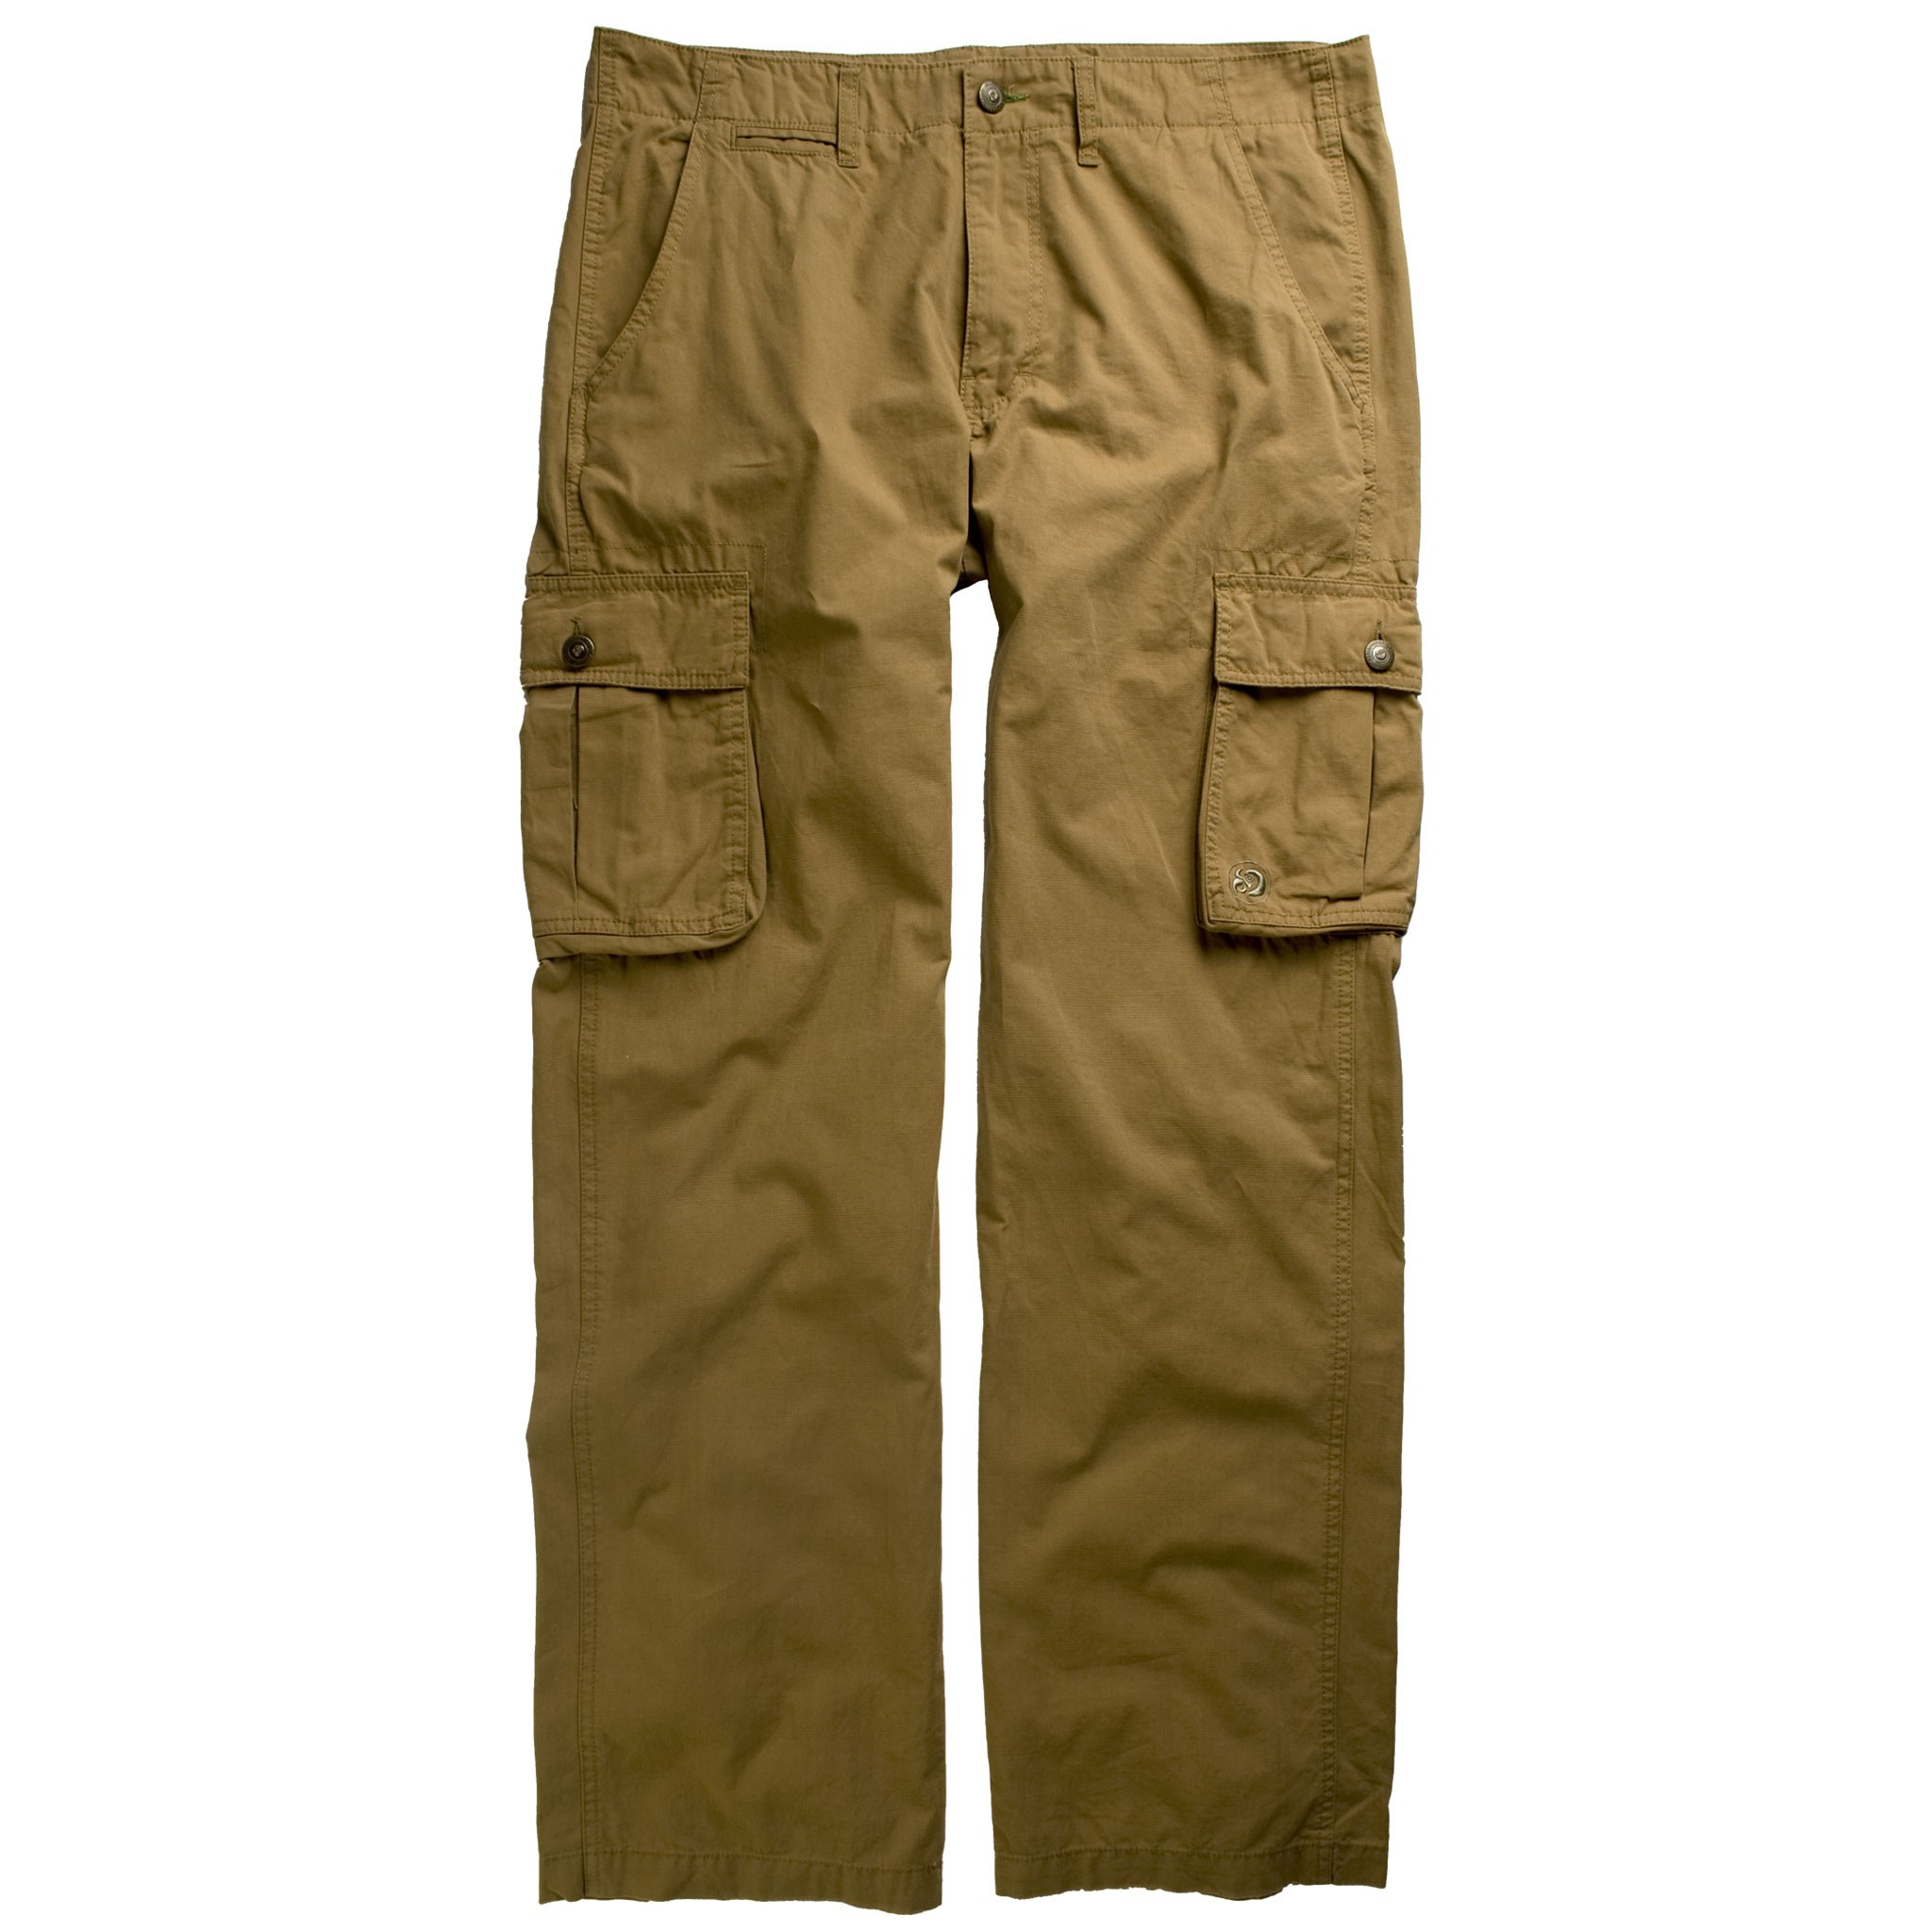 Shop men's cargo khaki pants big & tall at Dockers® US for the best selection online. Dockers® - well-crafted comfort to help conquer the day.